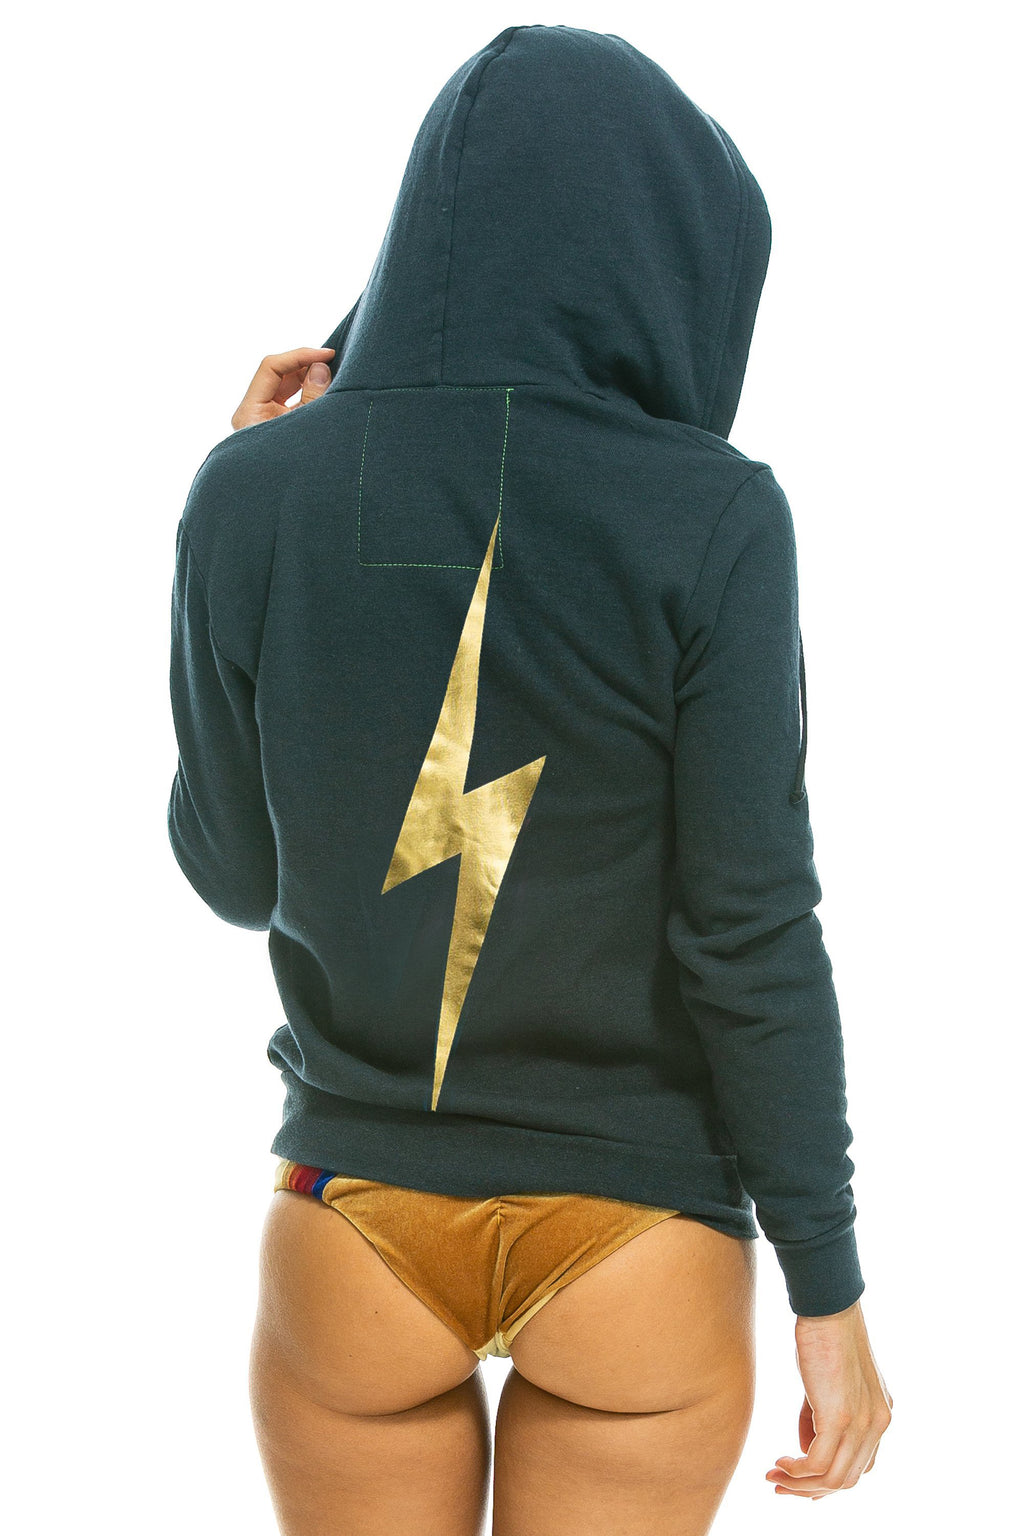 aviator nation bolt hoodie charcoal metallic gold